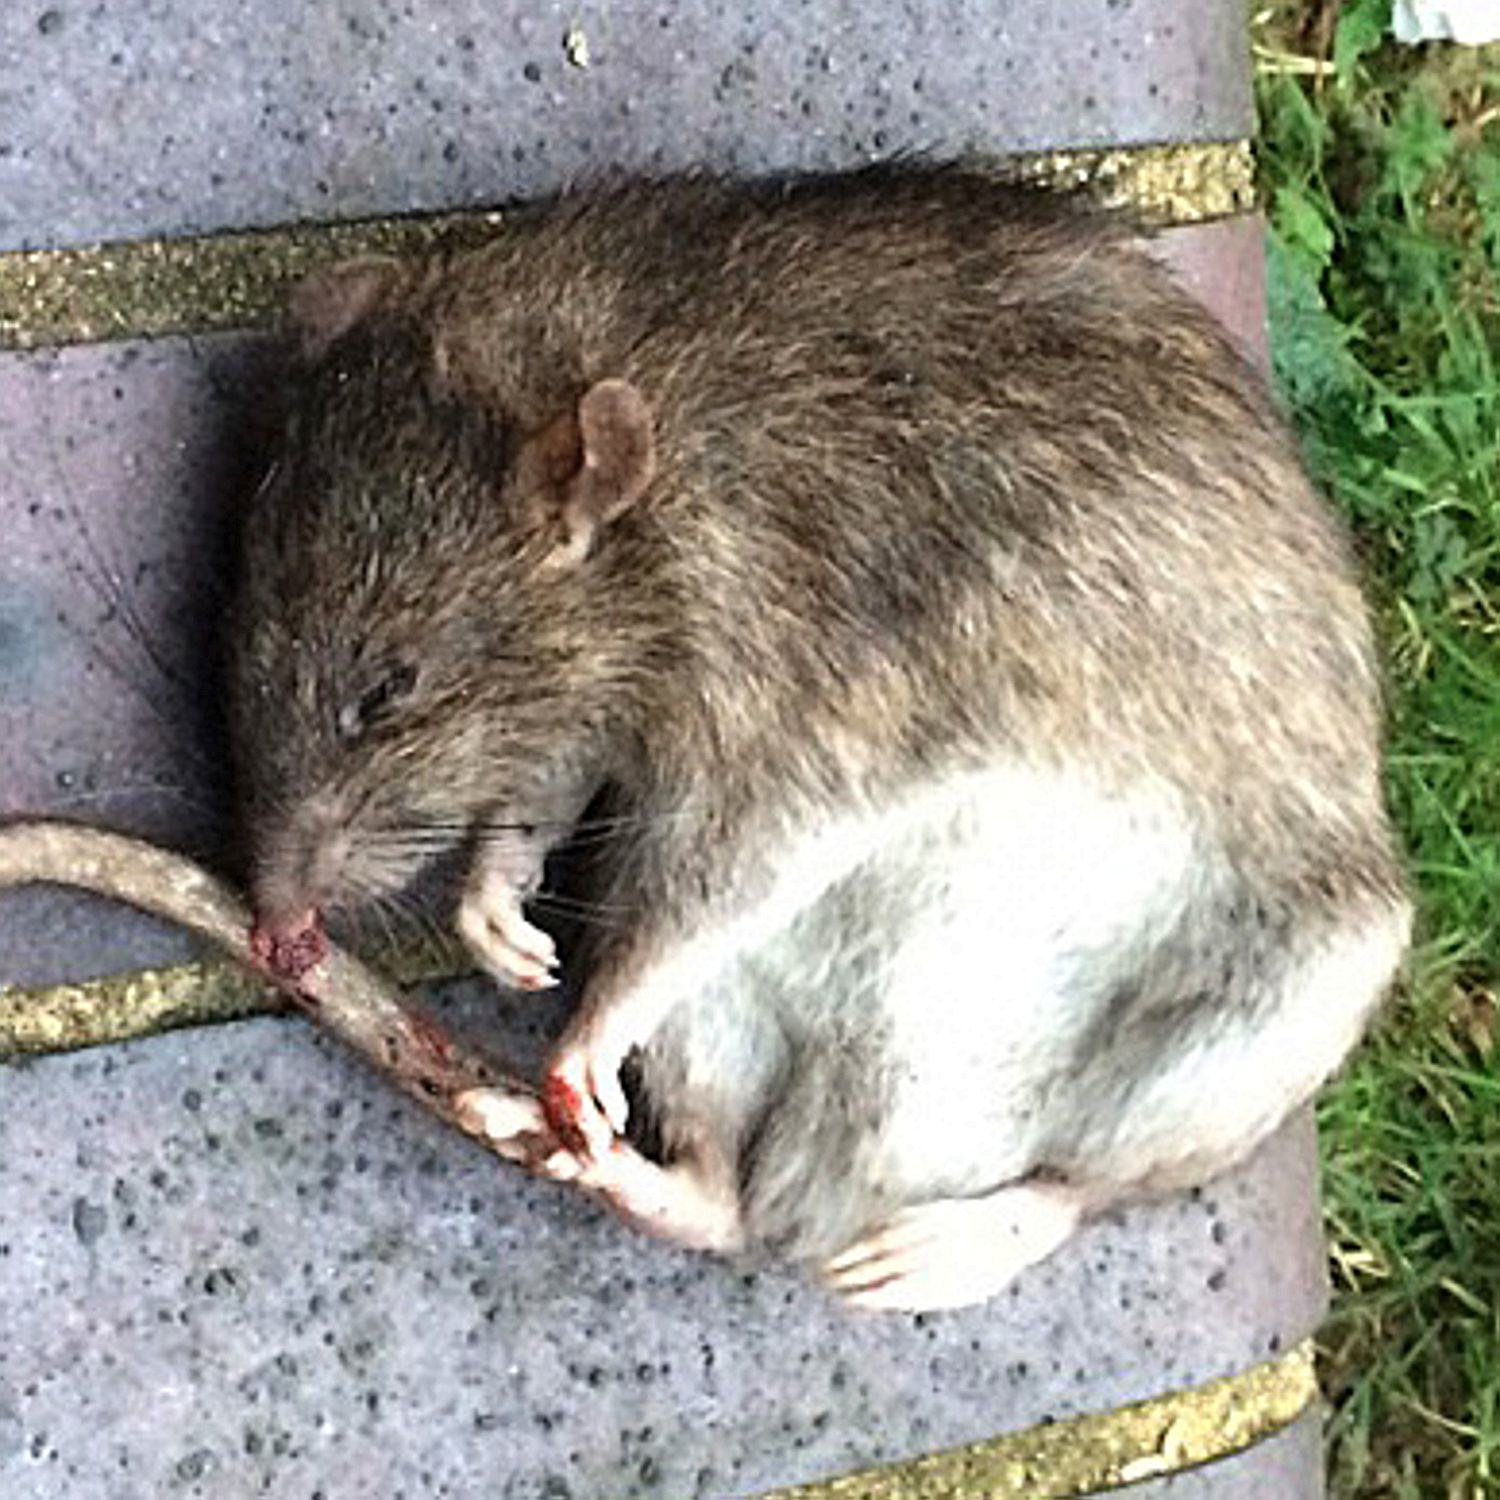 This Rat Attack Has Got Me Not Wanting To Ever Go To Bed Again 04 21030158 dccd0b 2612445a